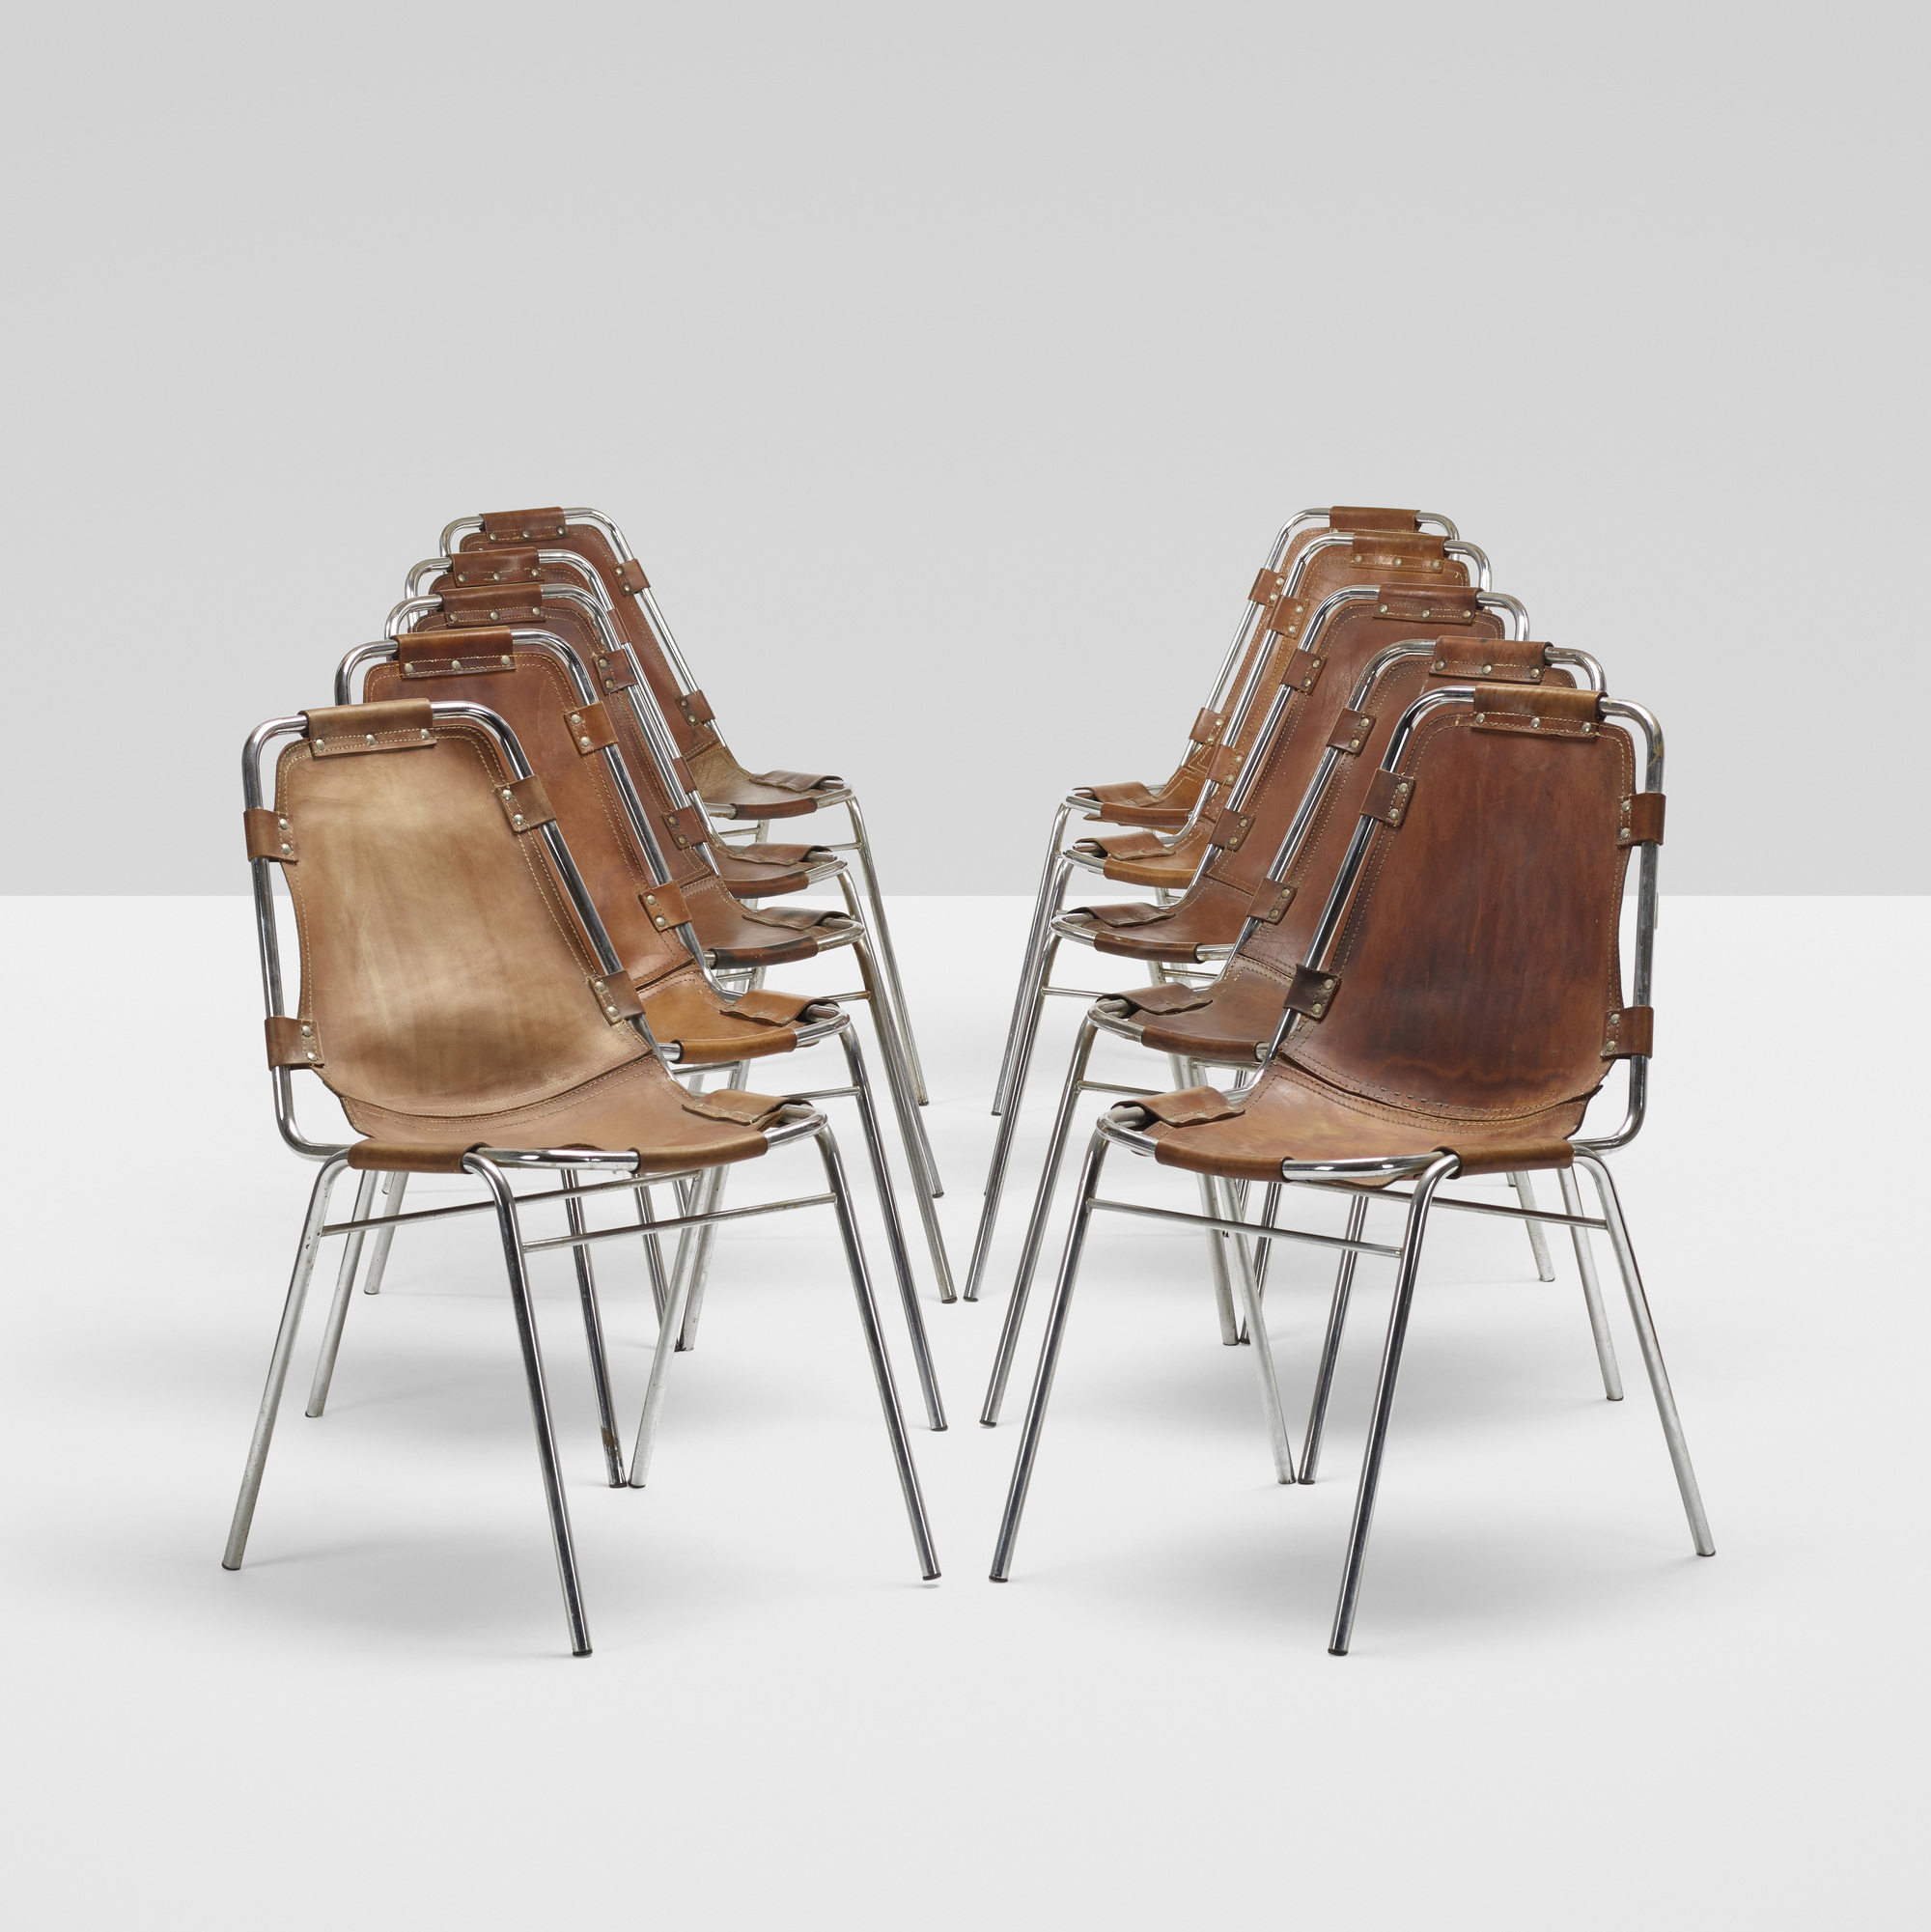 117: Charlotte Perriand / dining chairs from Les Arcs, set of ten (3 of 5)